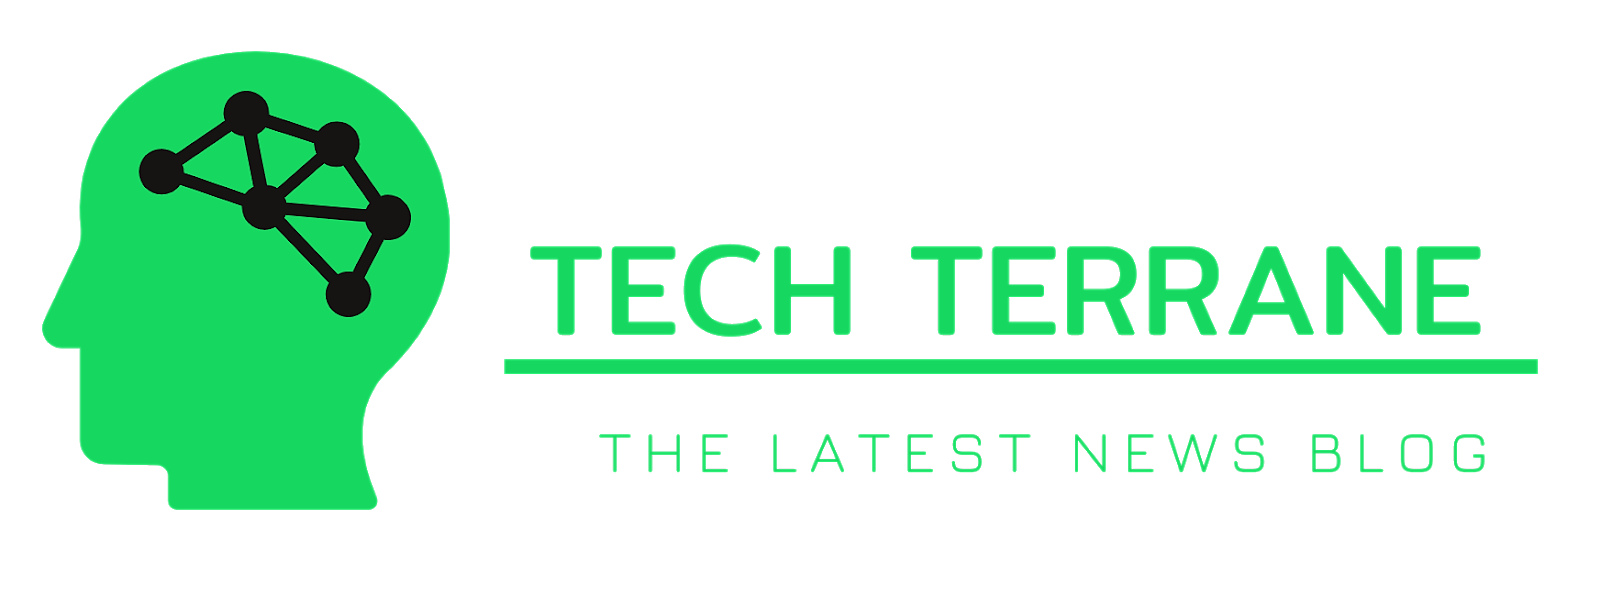 Tech Terrane Latest News